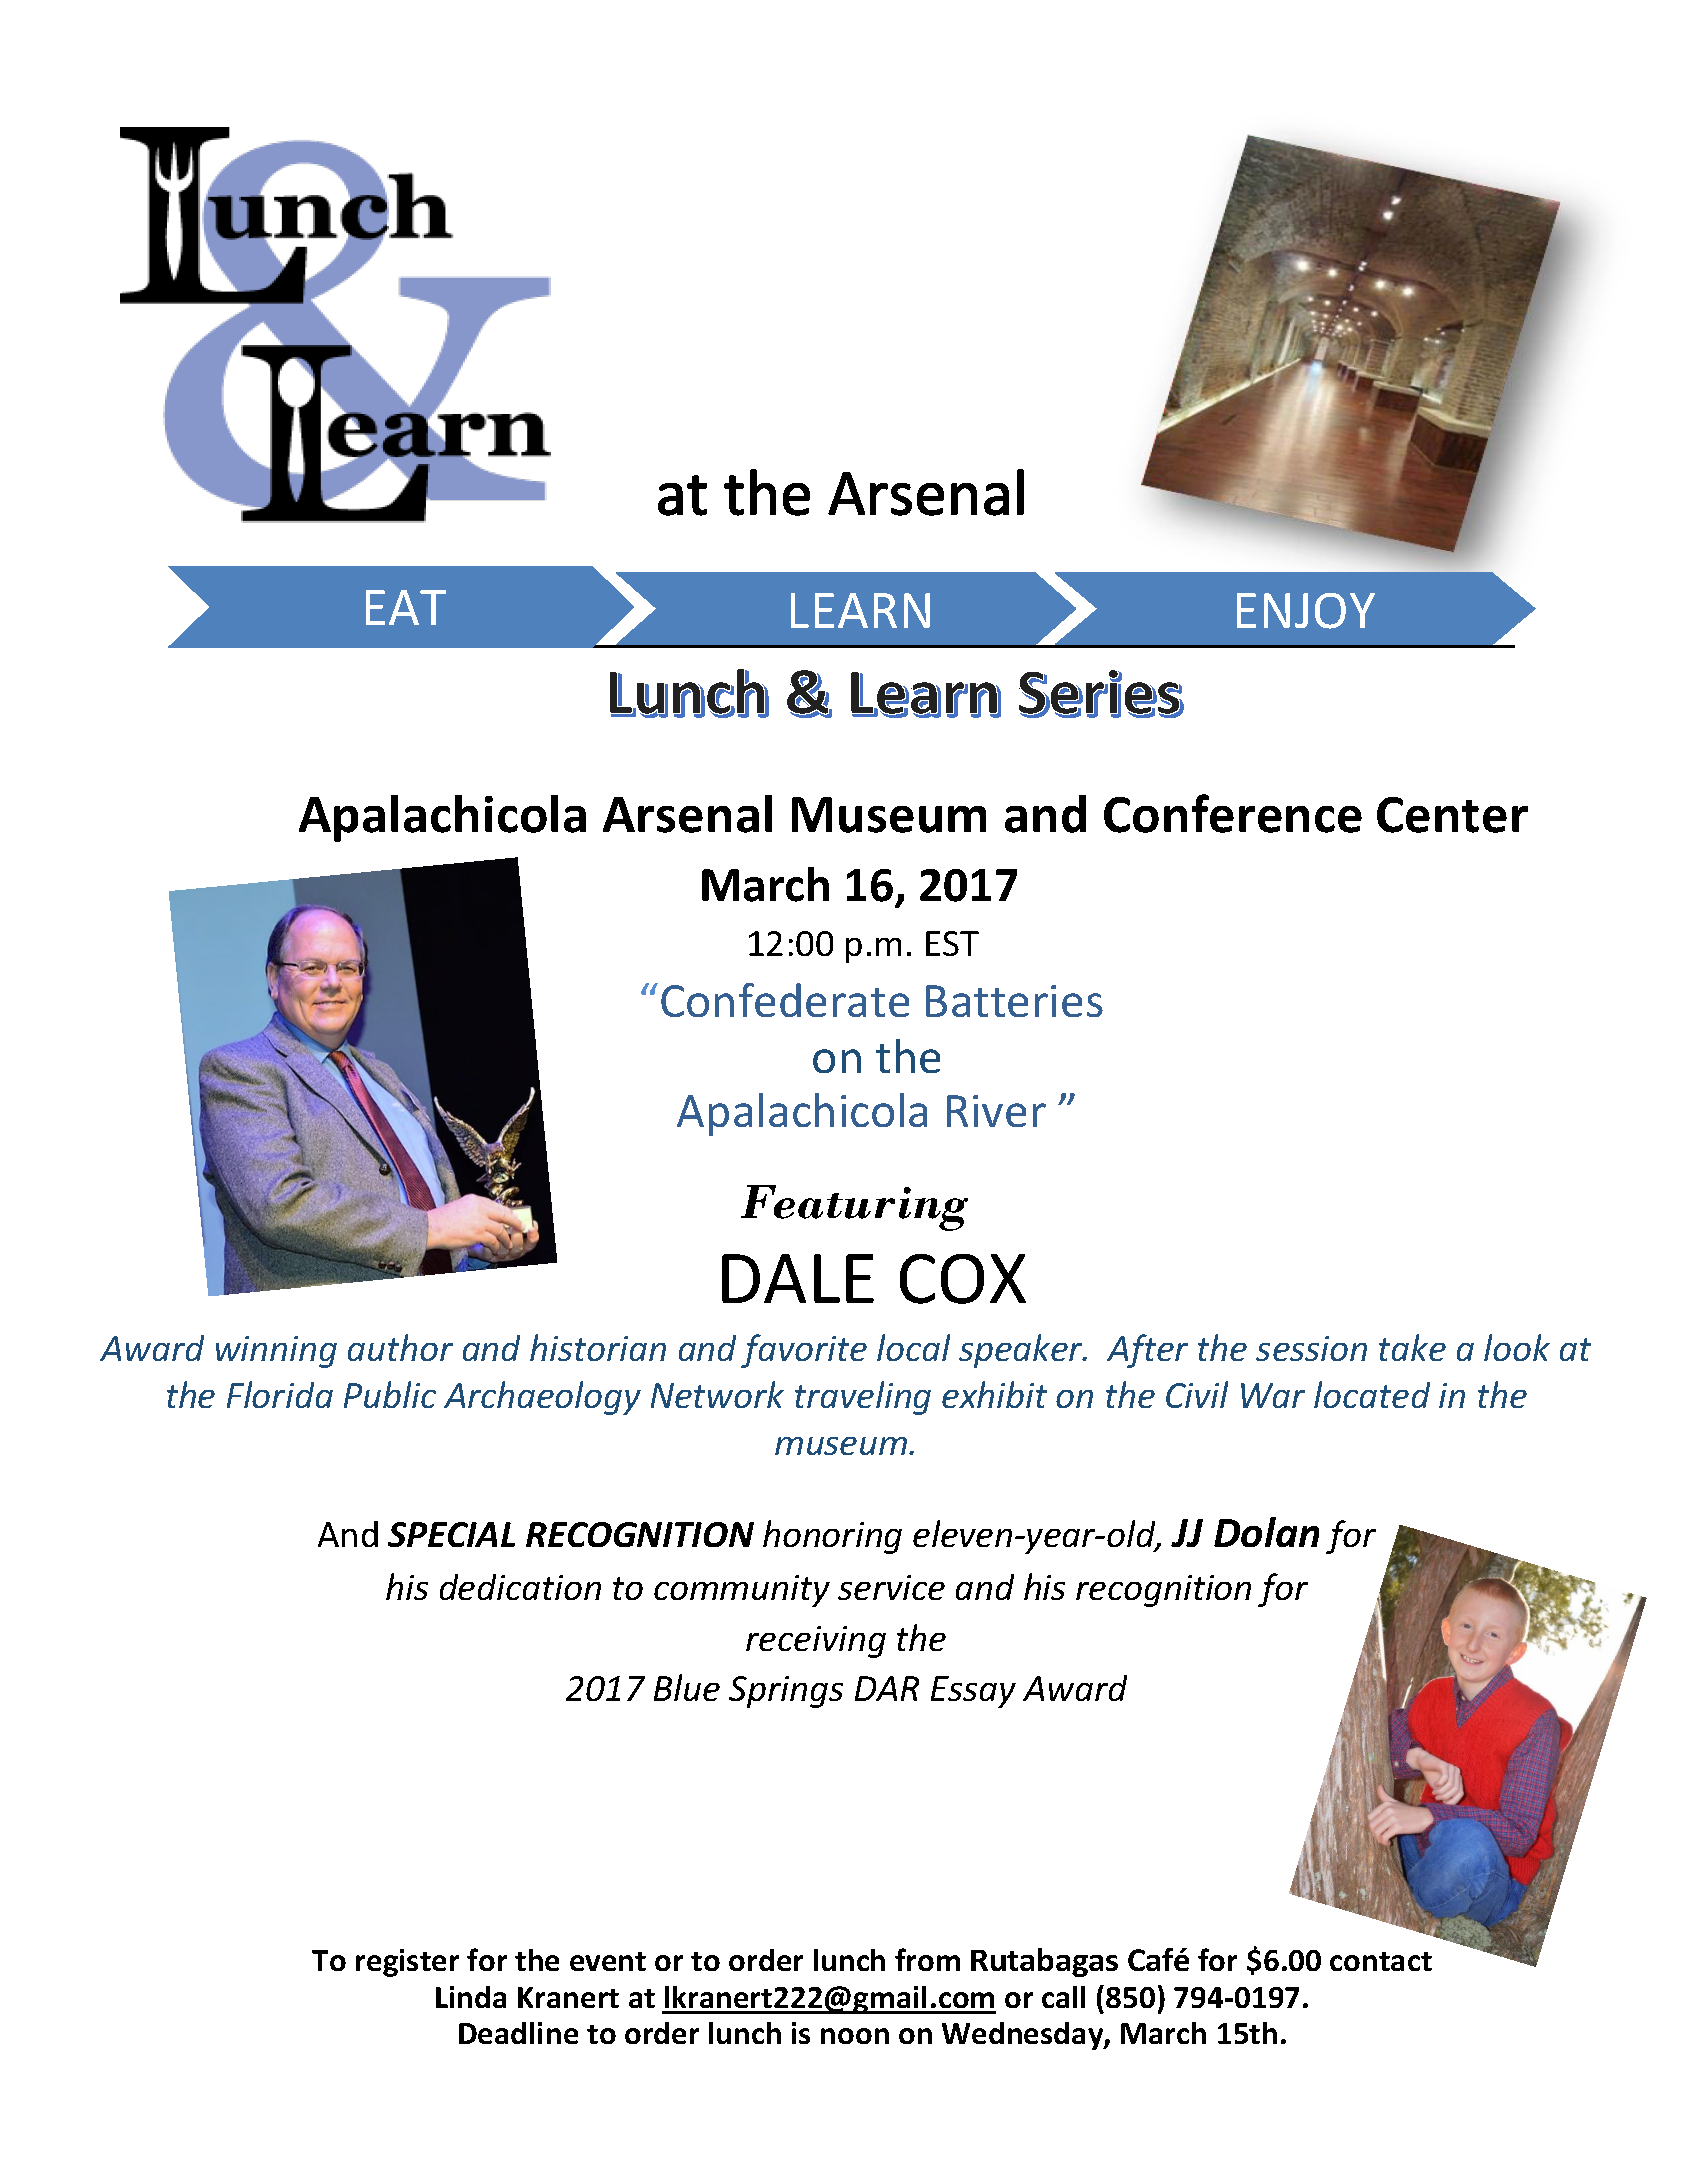 Lunch And Learn At The Apalachicola Arsenal Museum